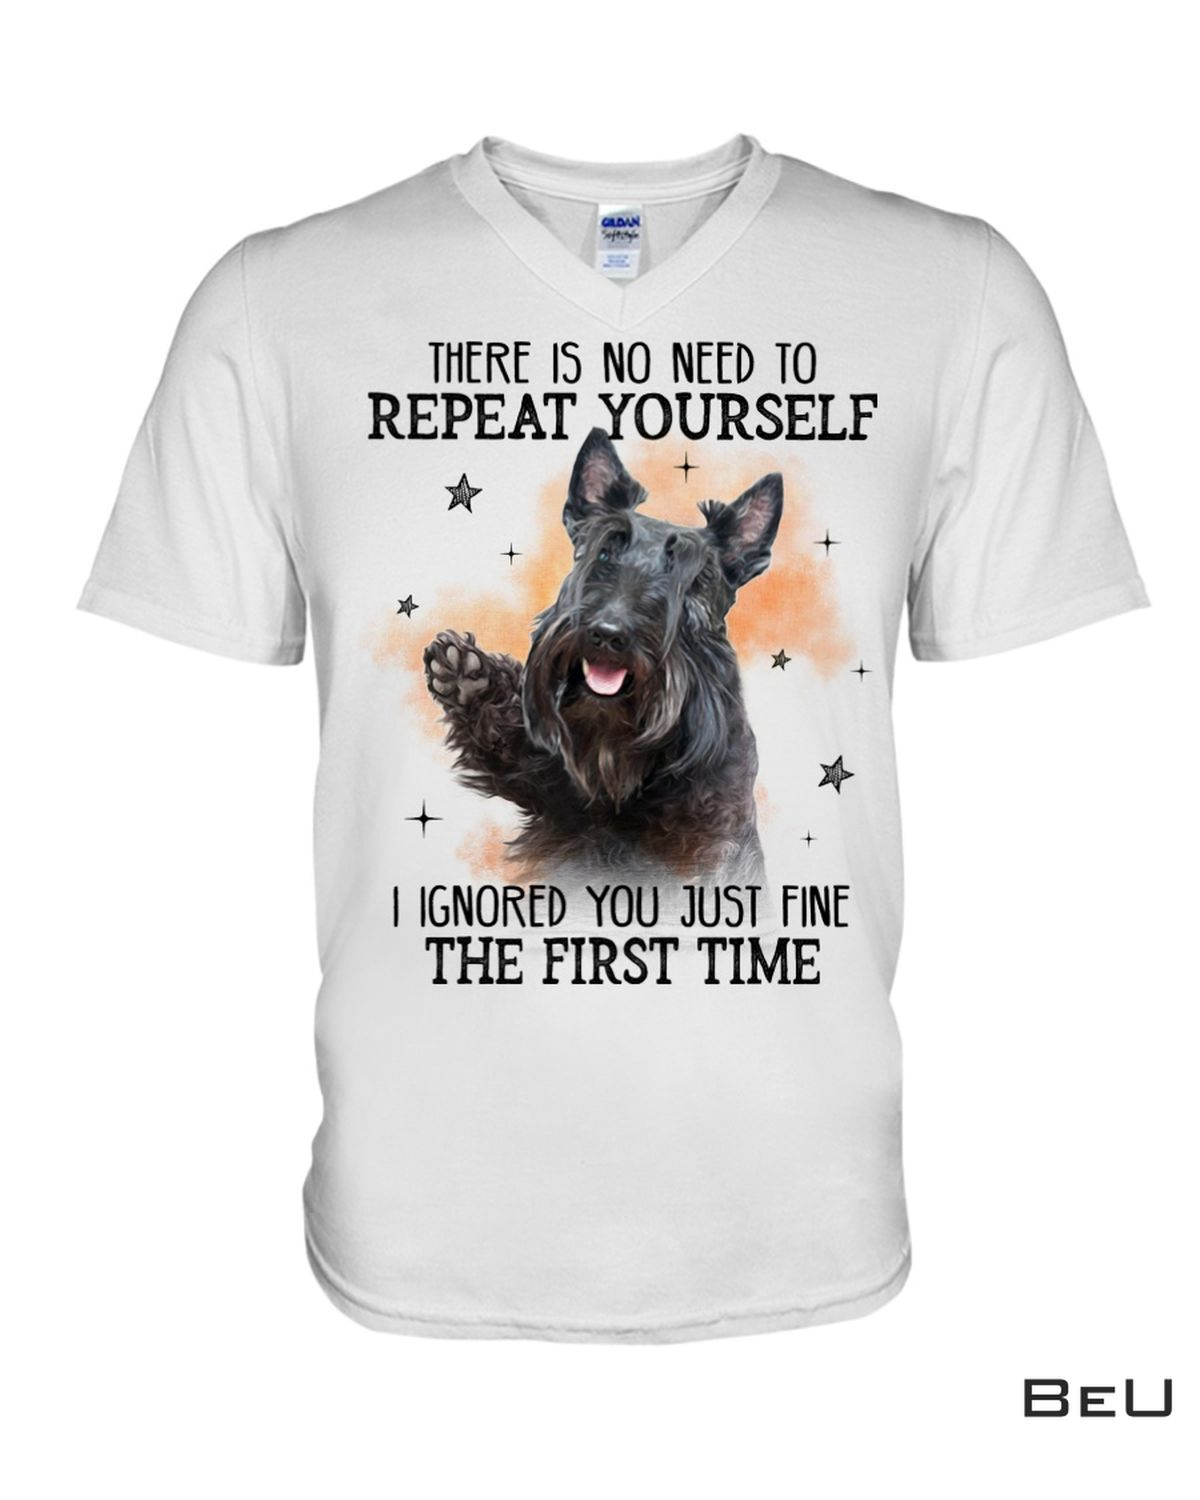 Print On Demand Scottish Terrier No Need To Repeat Yourself Shirt